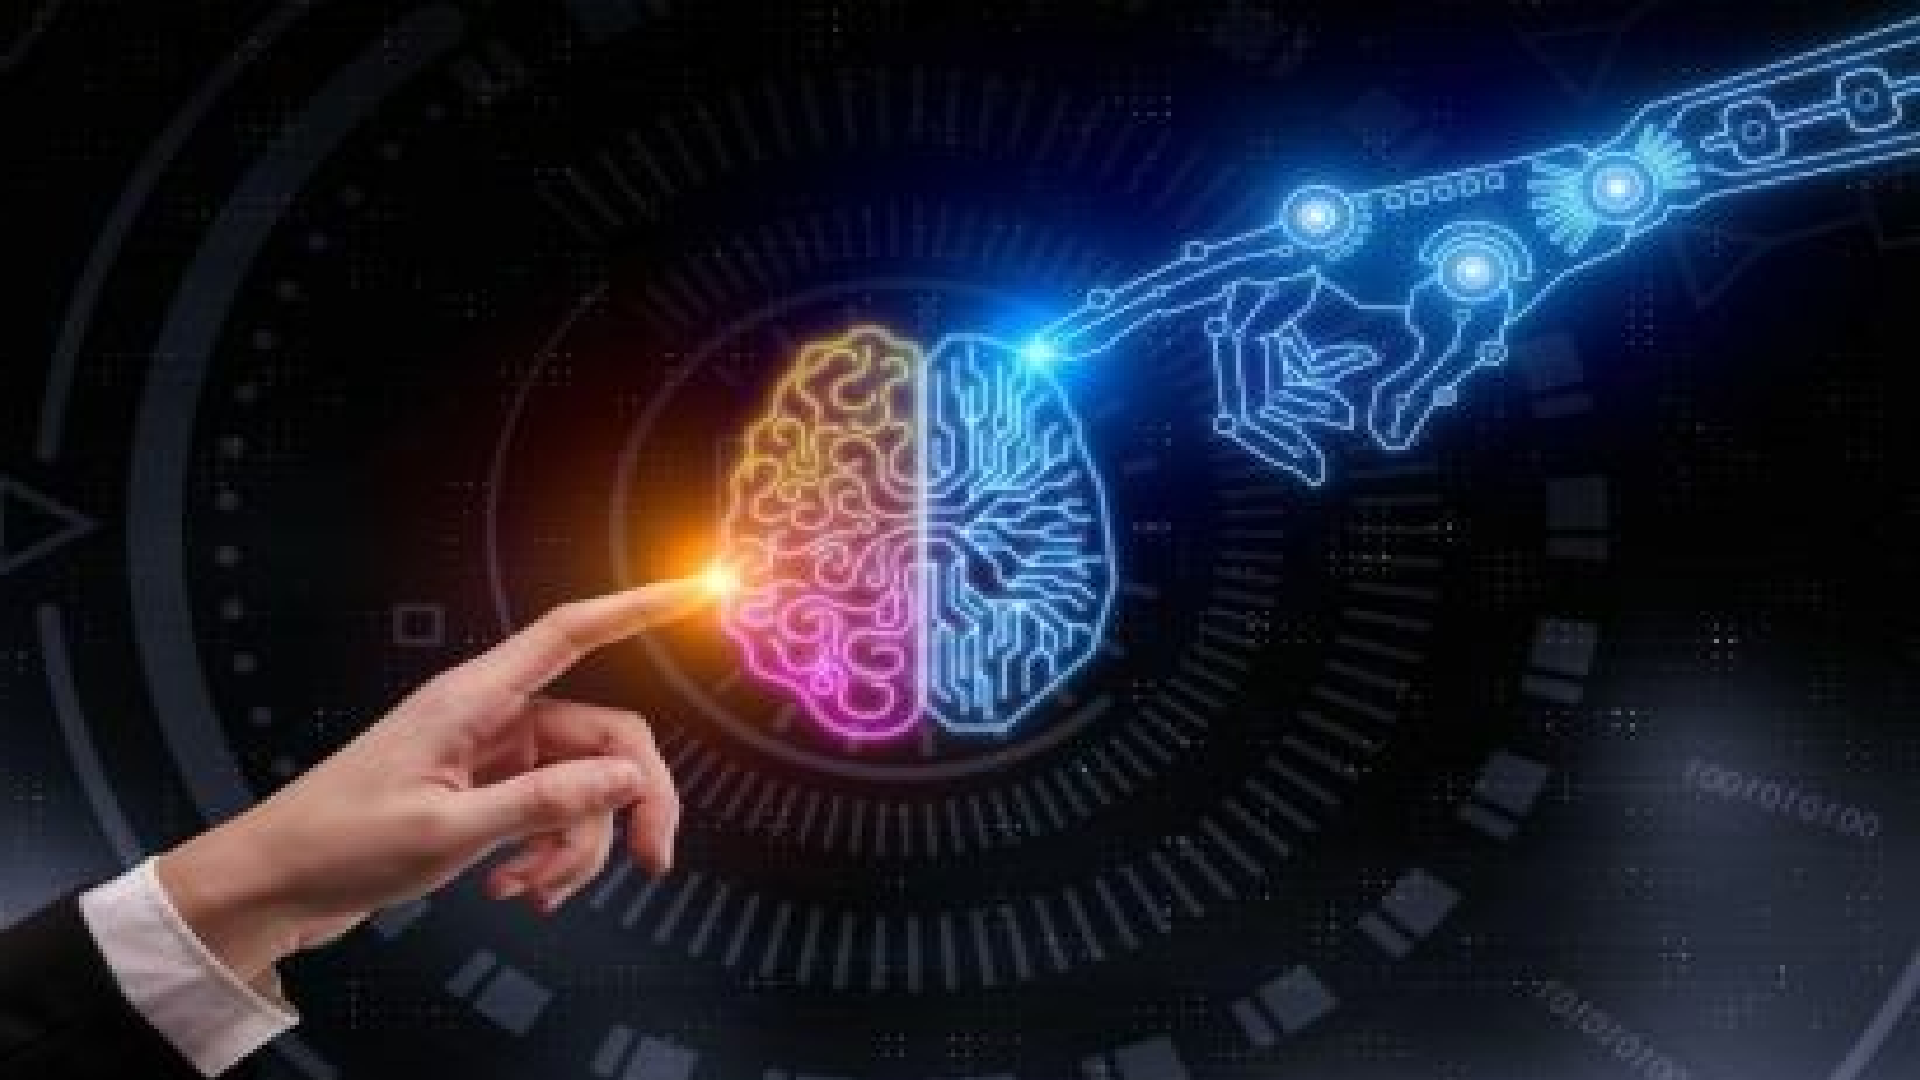 How much does artificial intelligence impact our lives?